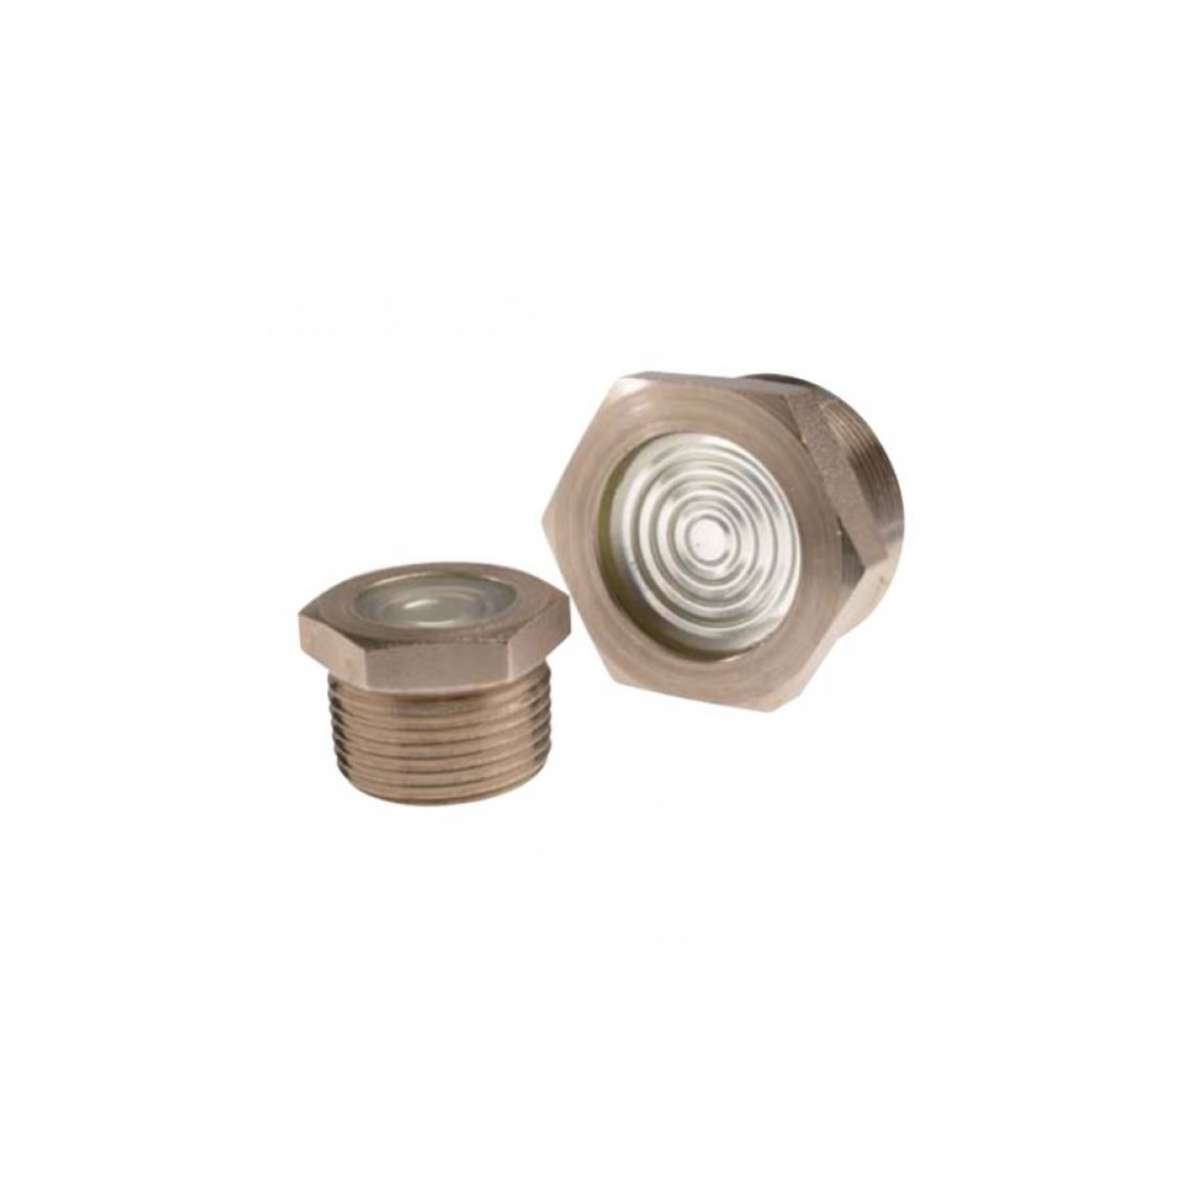 "Fluid Level Sight Glass - 1/2"" NPT"